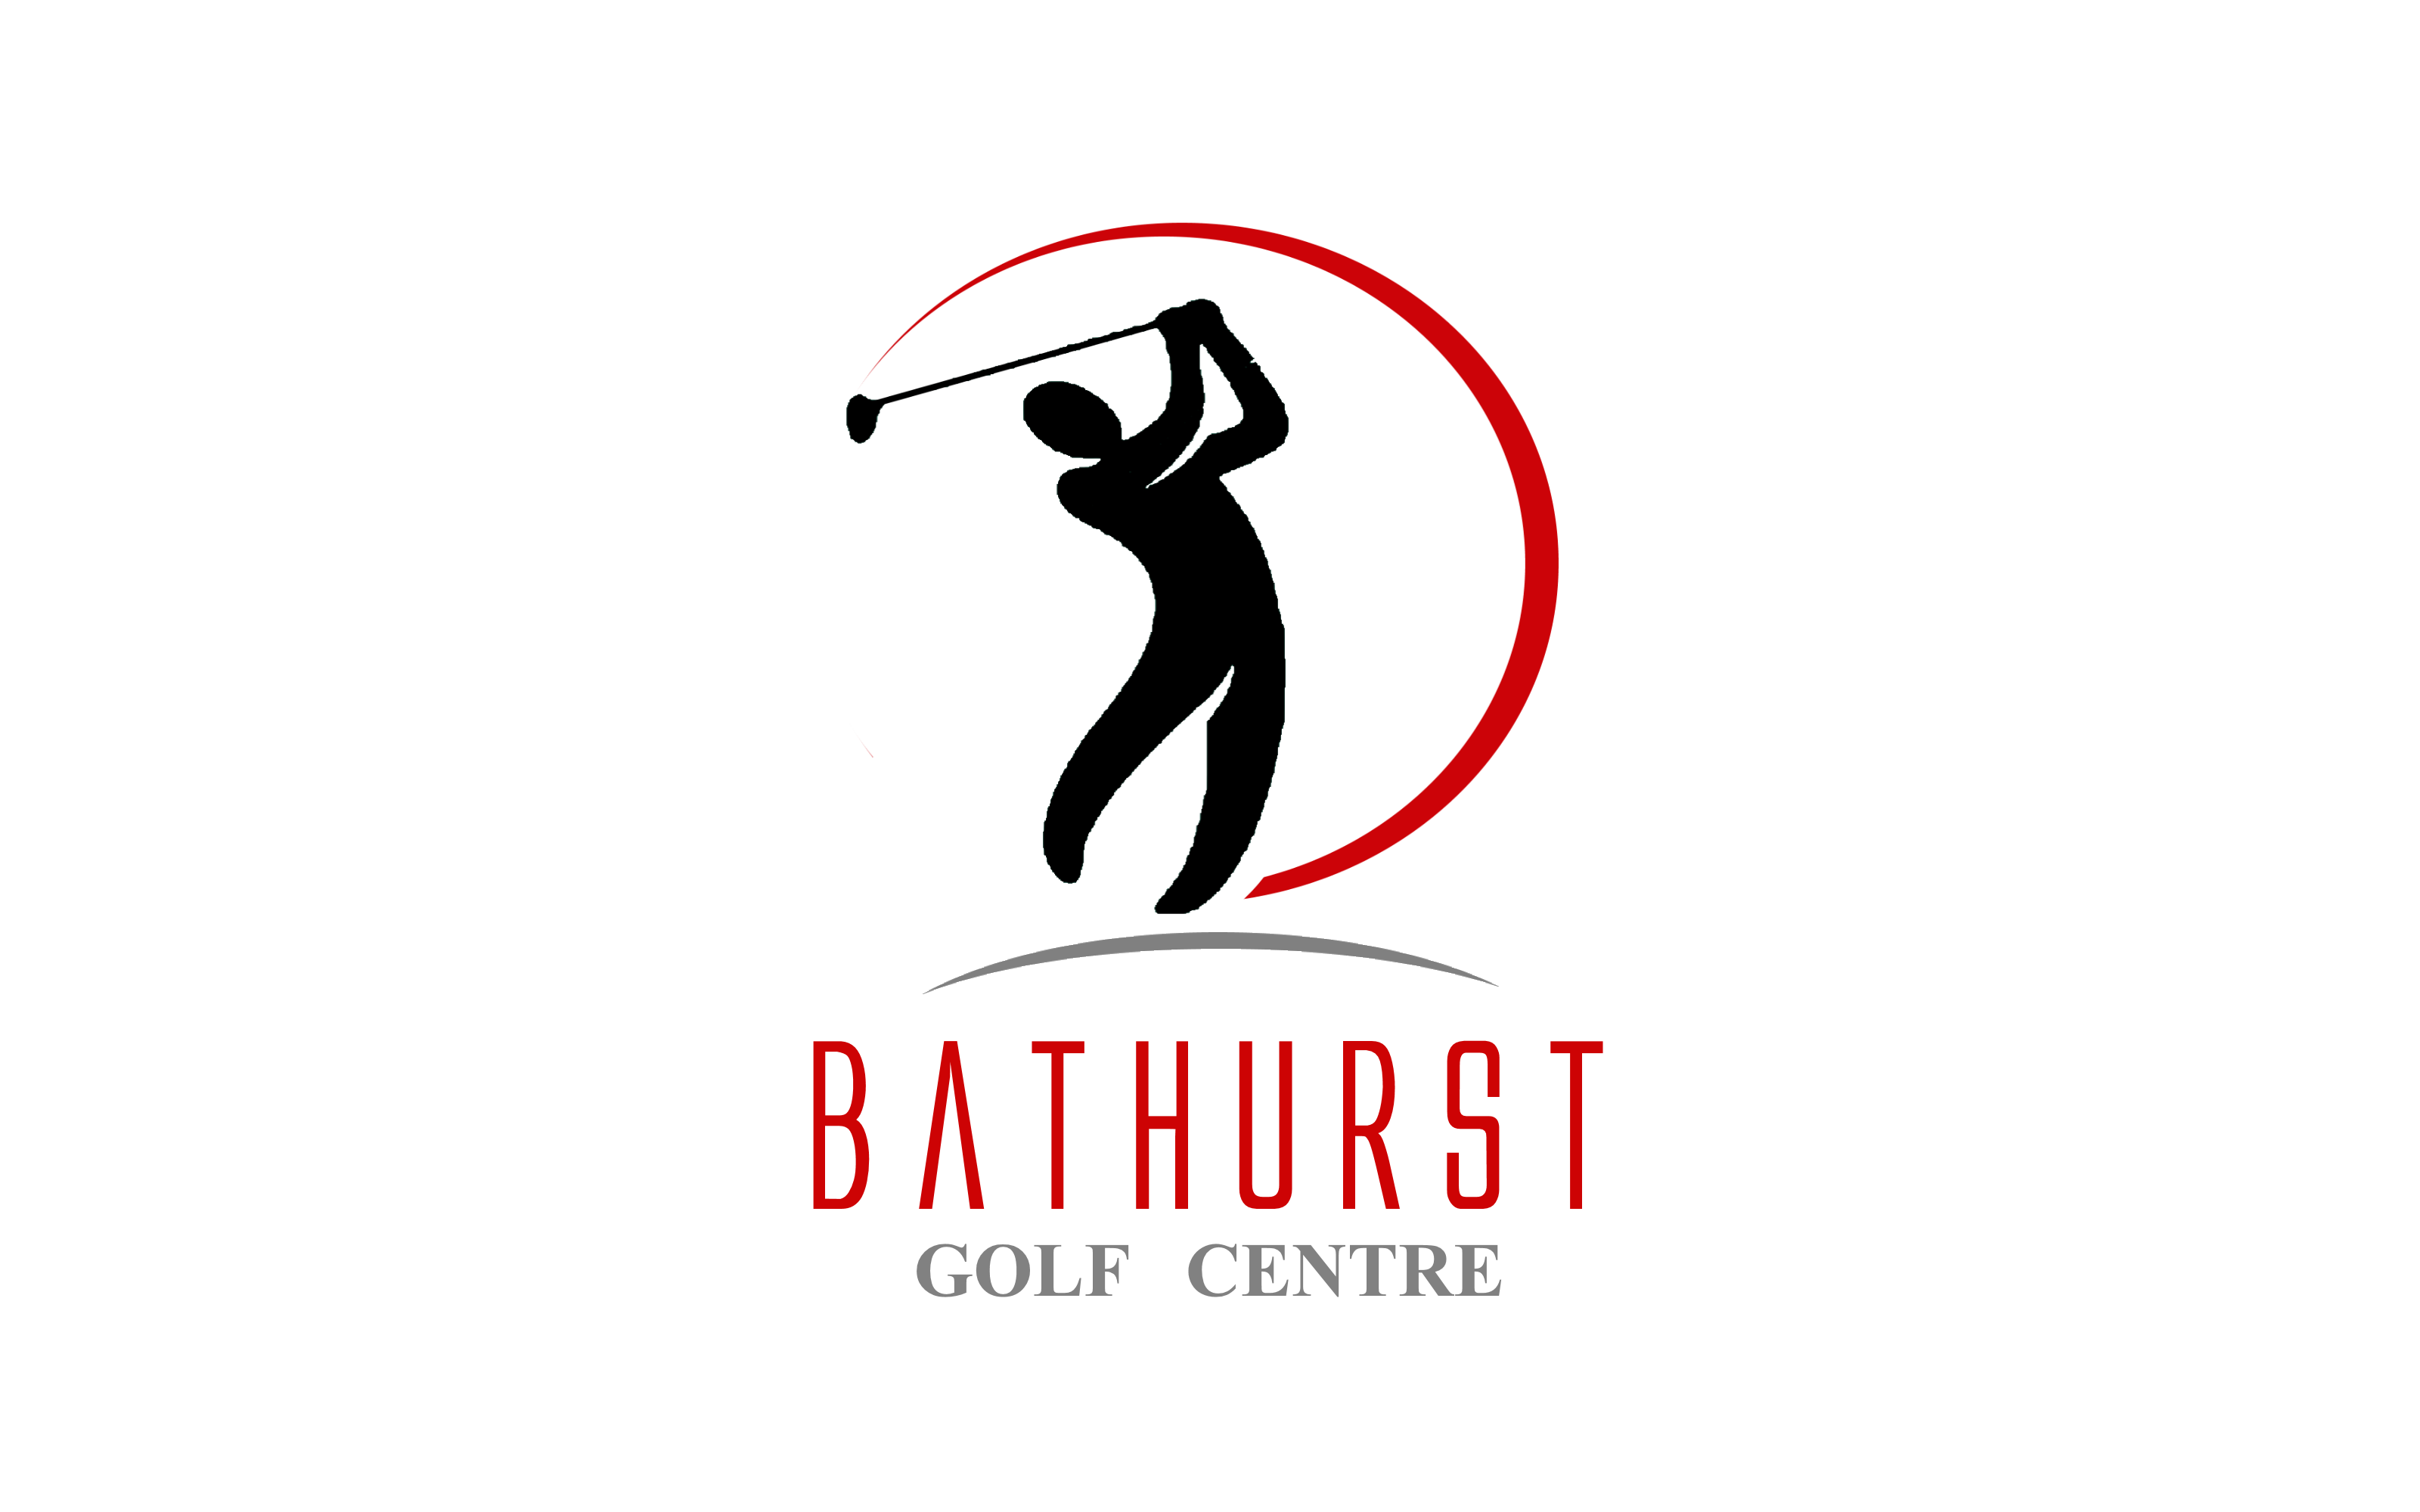 Logo Design by Roberto Bassi - Entry No. 70 in the Logo Design Contest Inspiring Logo Design for Bathurst Golf Centre.